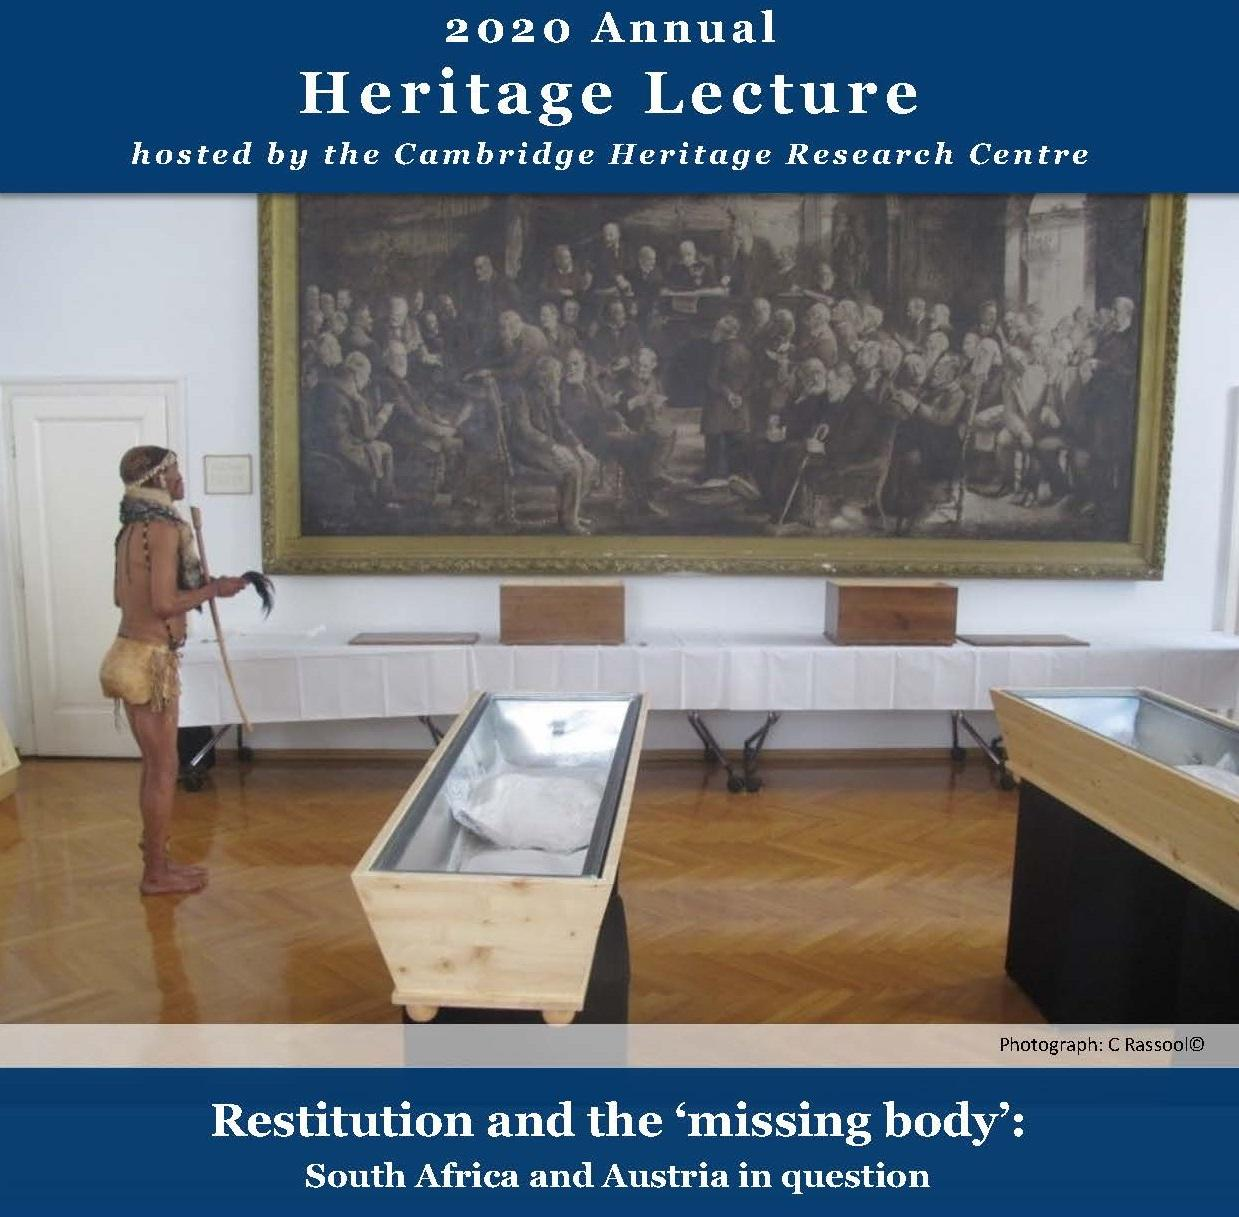 3rd Annual Heritage Lecture